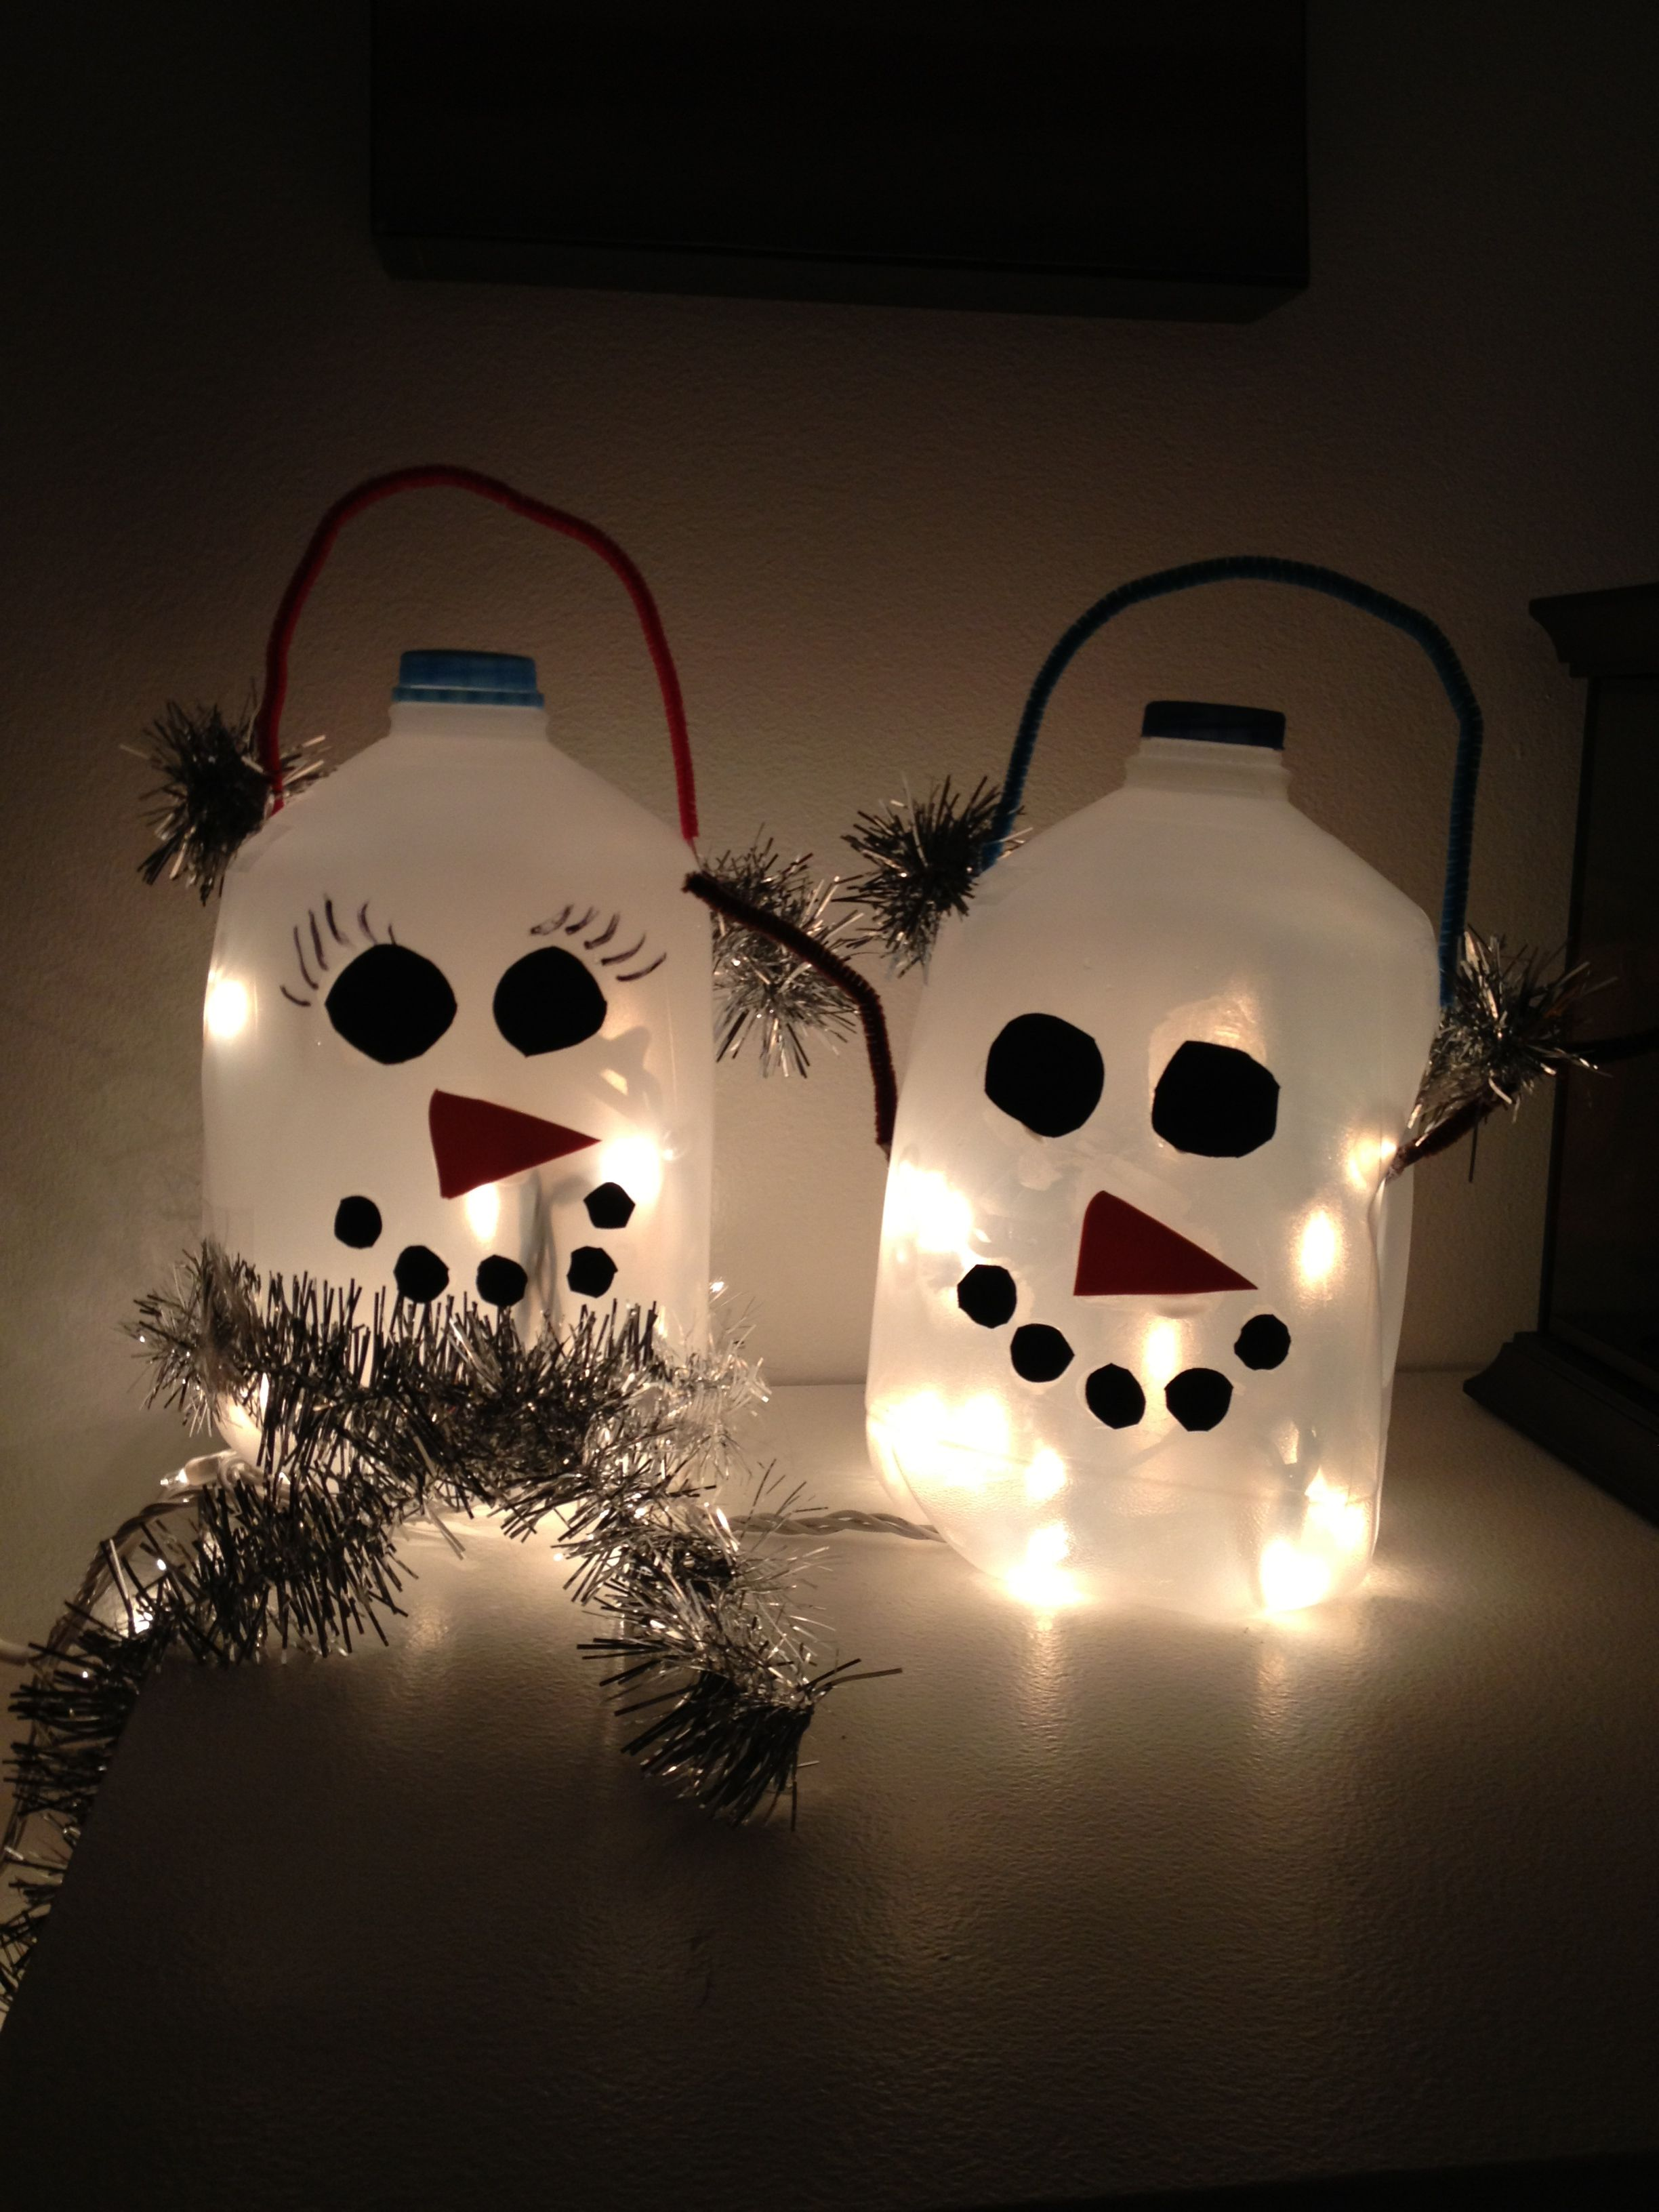 Snowman craft out of milk jugs winter crafts pinterest for Christmas crafts with milk jugs